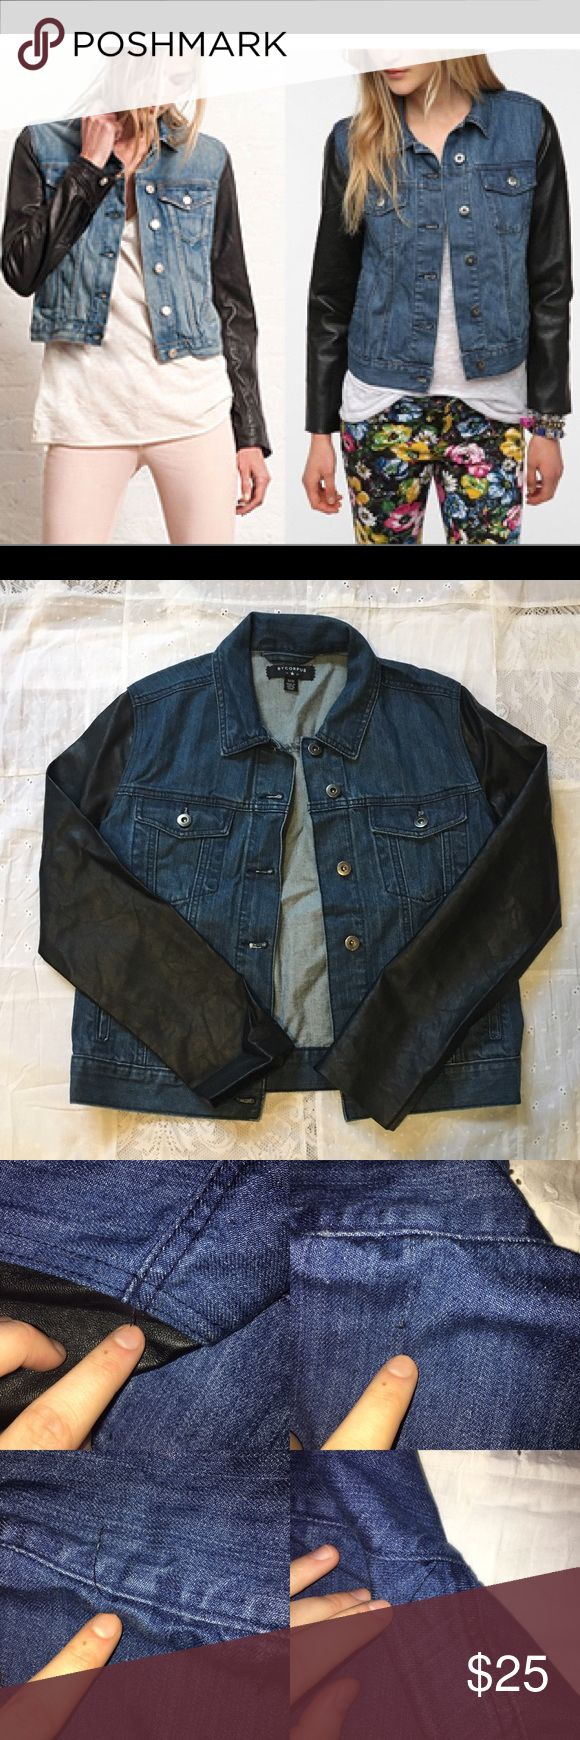 "BYCORPUS Dark Wash Denim Jacket Leather Sleeves Women's Dark Wash Denim Jacket with ""Leather"" Pleather Sleeves. Originally purchased from Urban Outfitters. * Size Medium * Great condition, wrinkles from storage * Jacket Body Materials: 100% cotton * Sleeve Materials: 100% polyester  * Pictured pulled strings located on back of collar of jacket and on the top part of sleeves  * Pockets * Pulled strings on the inside of jacket.                  *Dry clean only…"